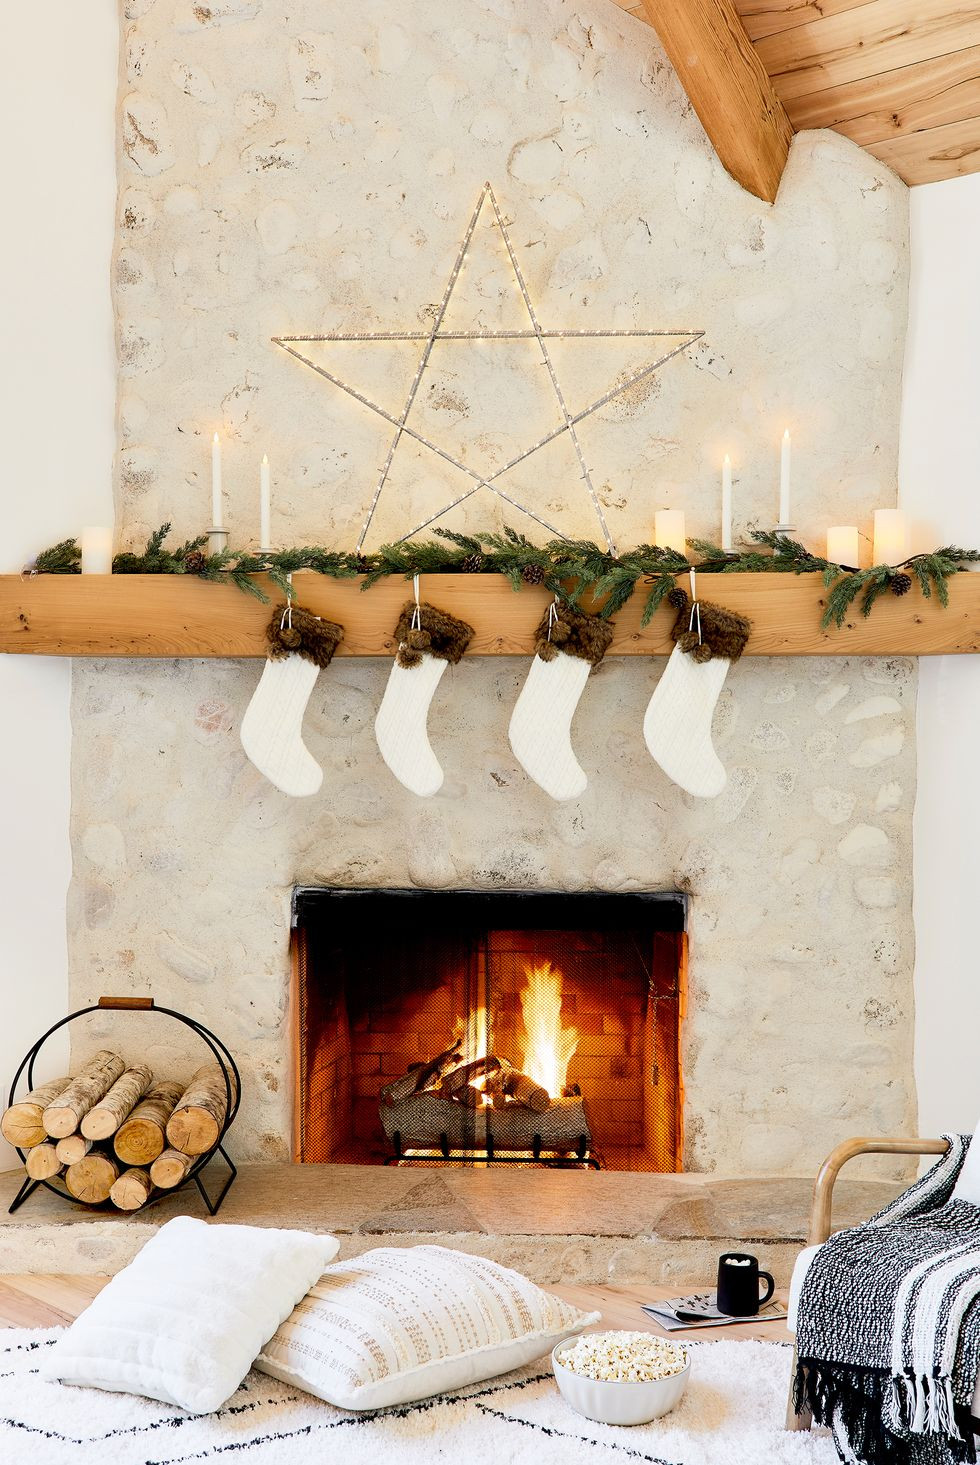 A concrete Christmas holiday fireplace with a mantel decorated with greenery, stockings, candles and a large star with a basket of blankets and a stack of wood on the floor for a modern and cozy feel.